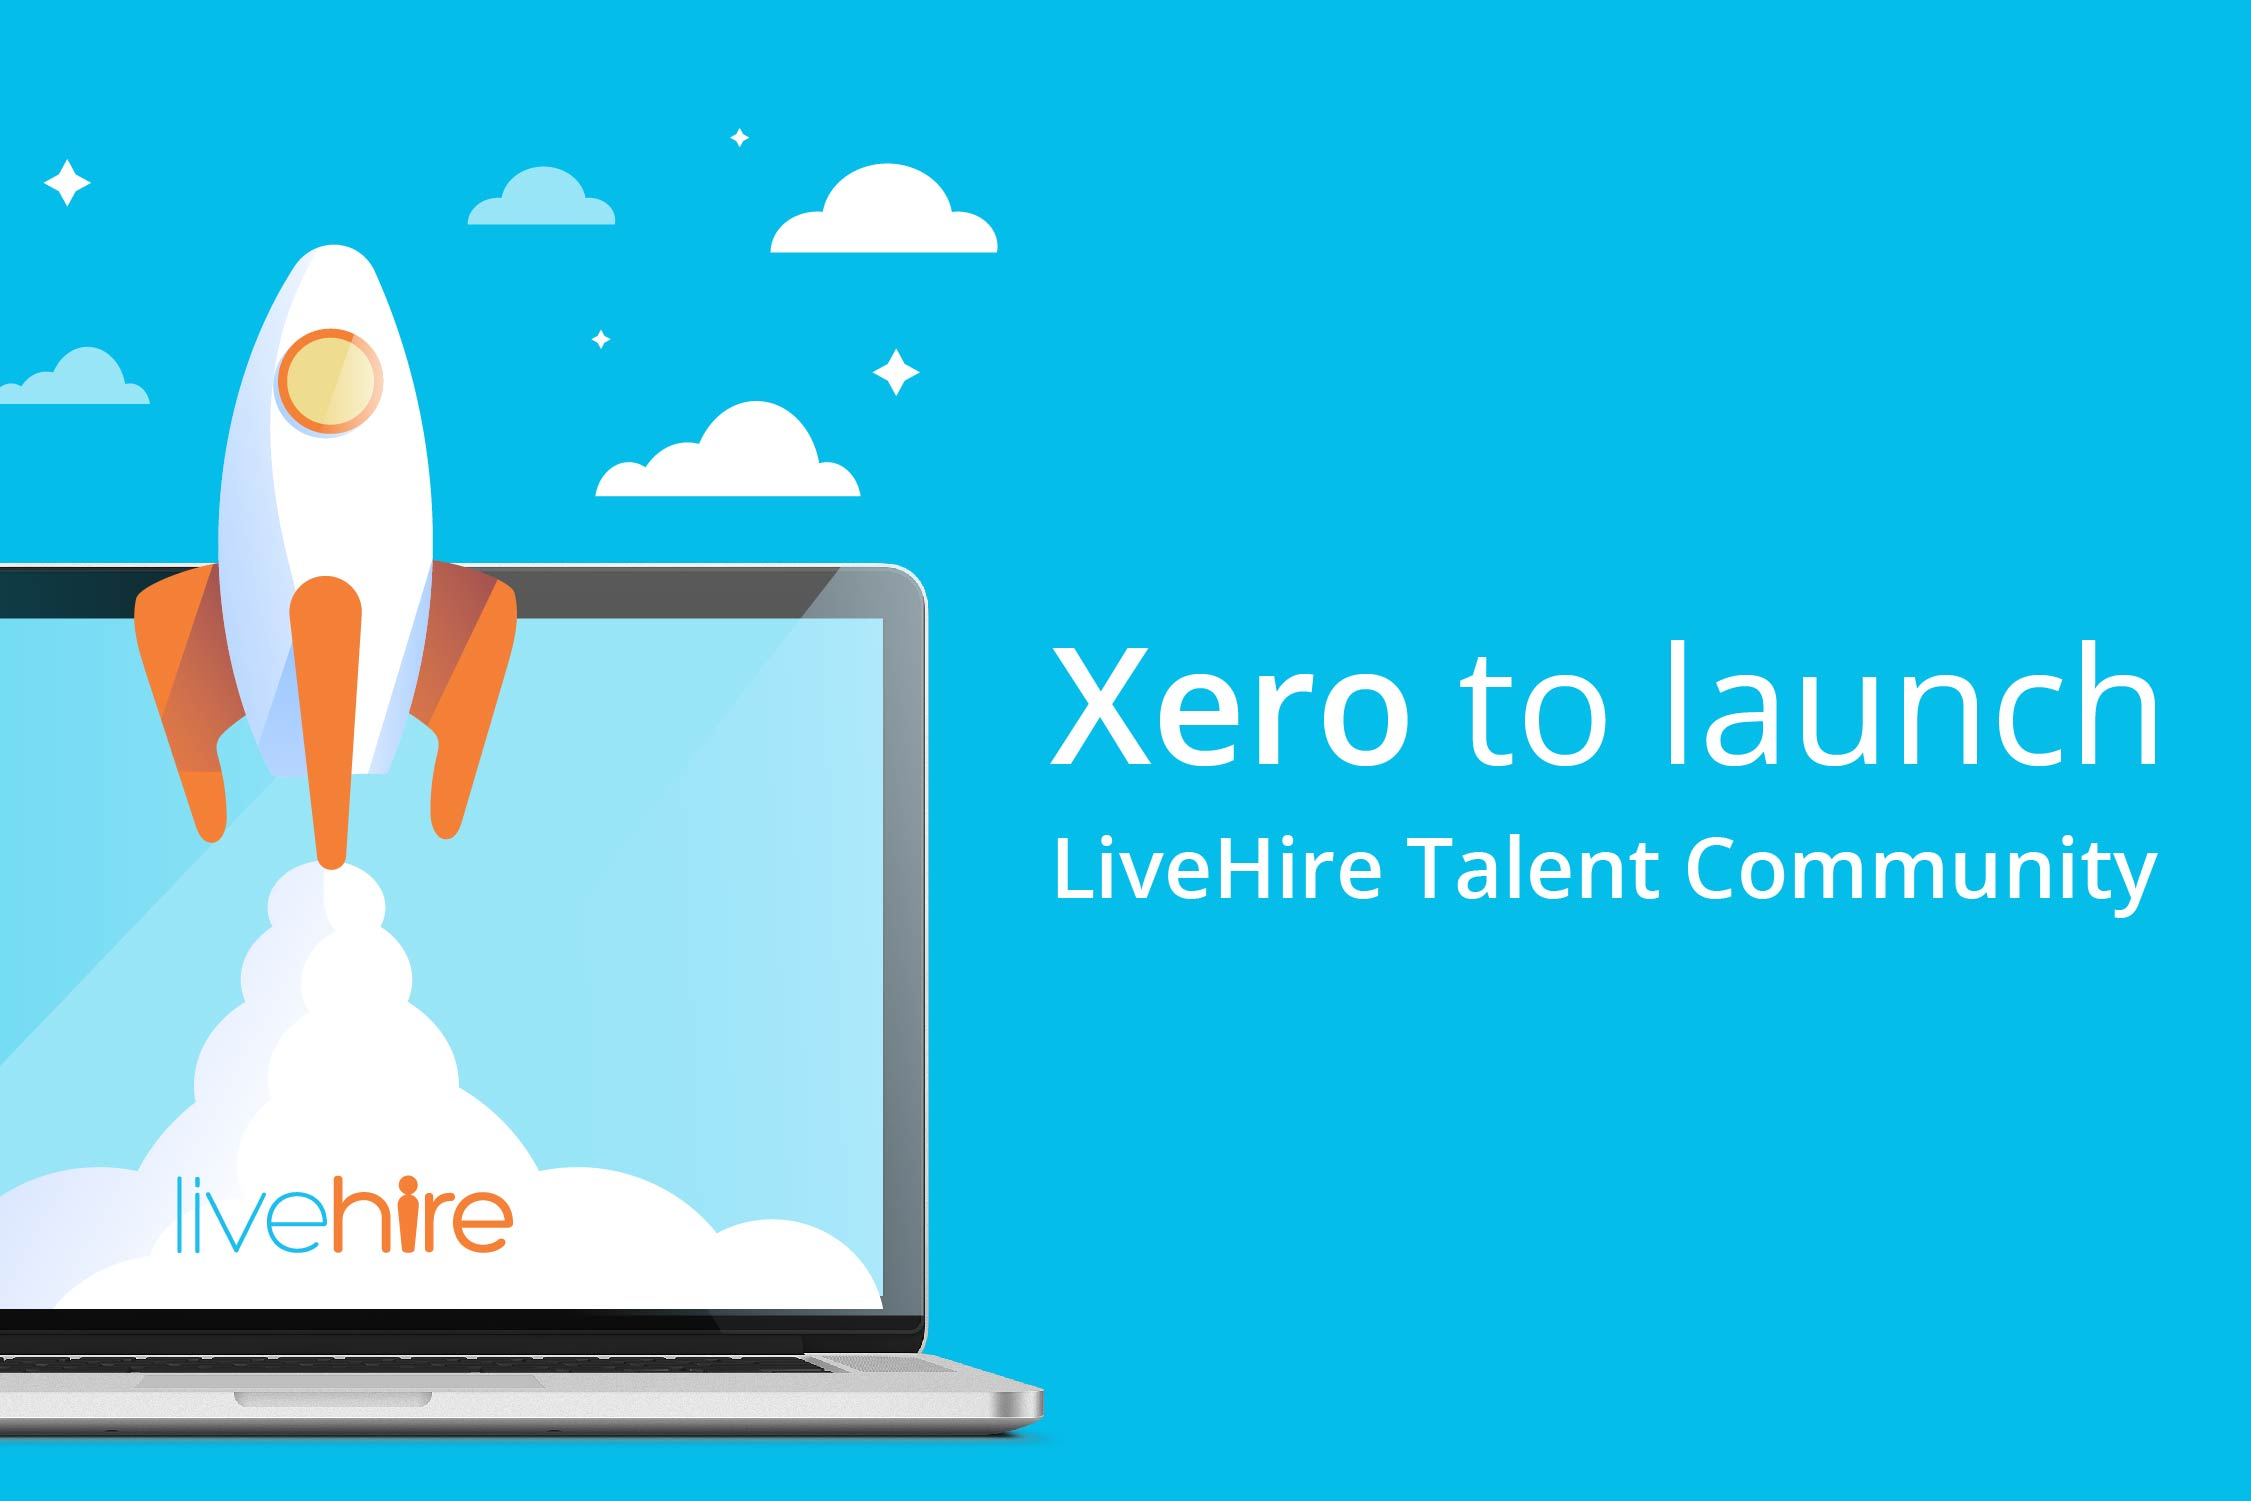 Xero to launch LiveHire Talent Community